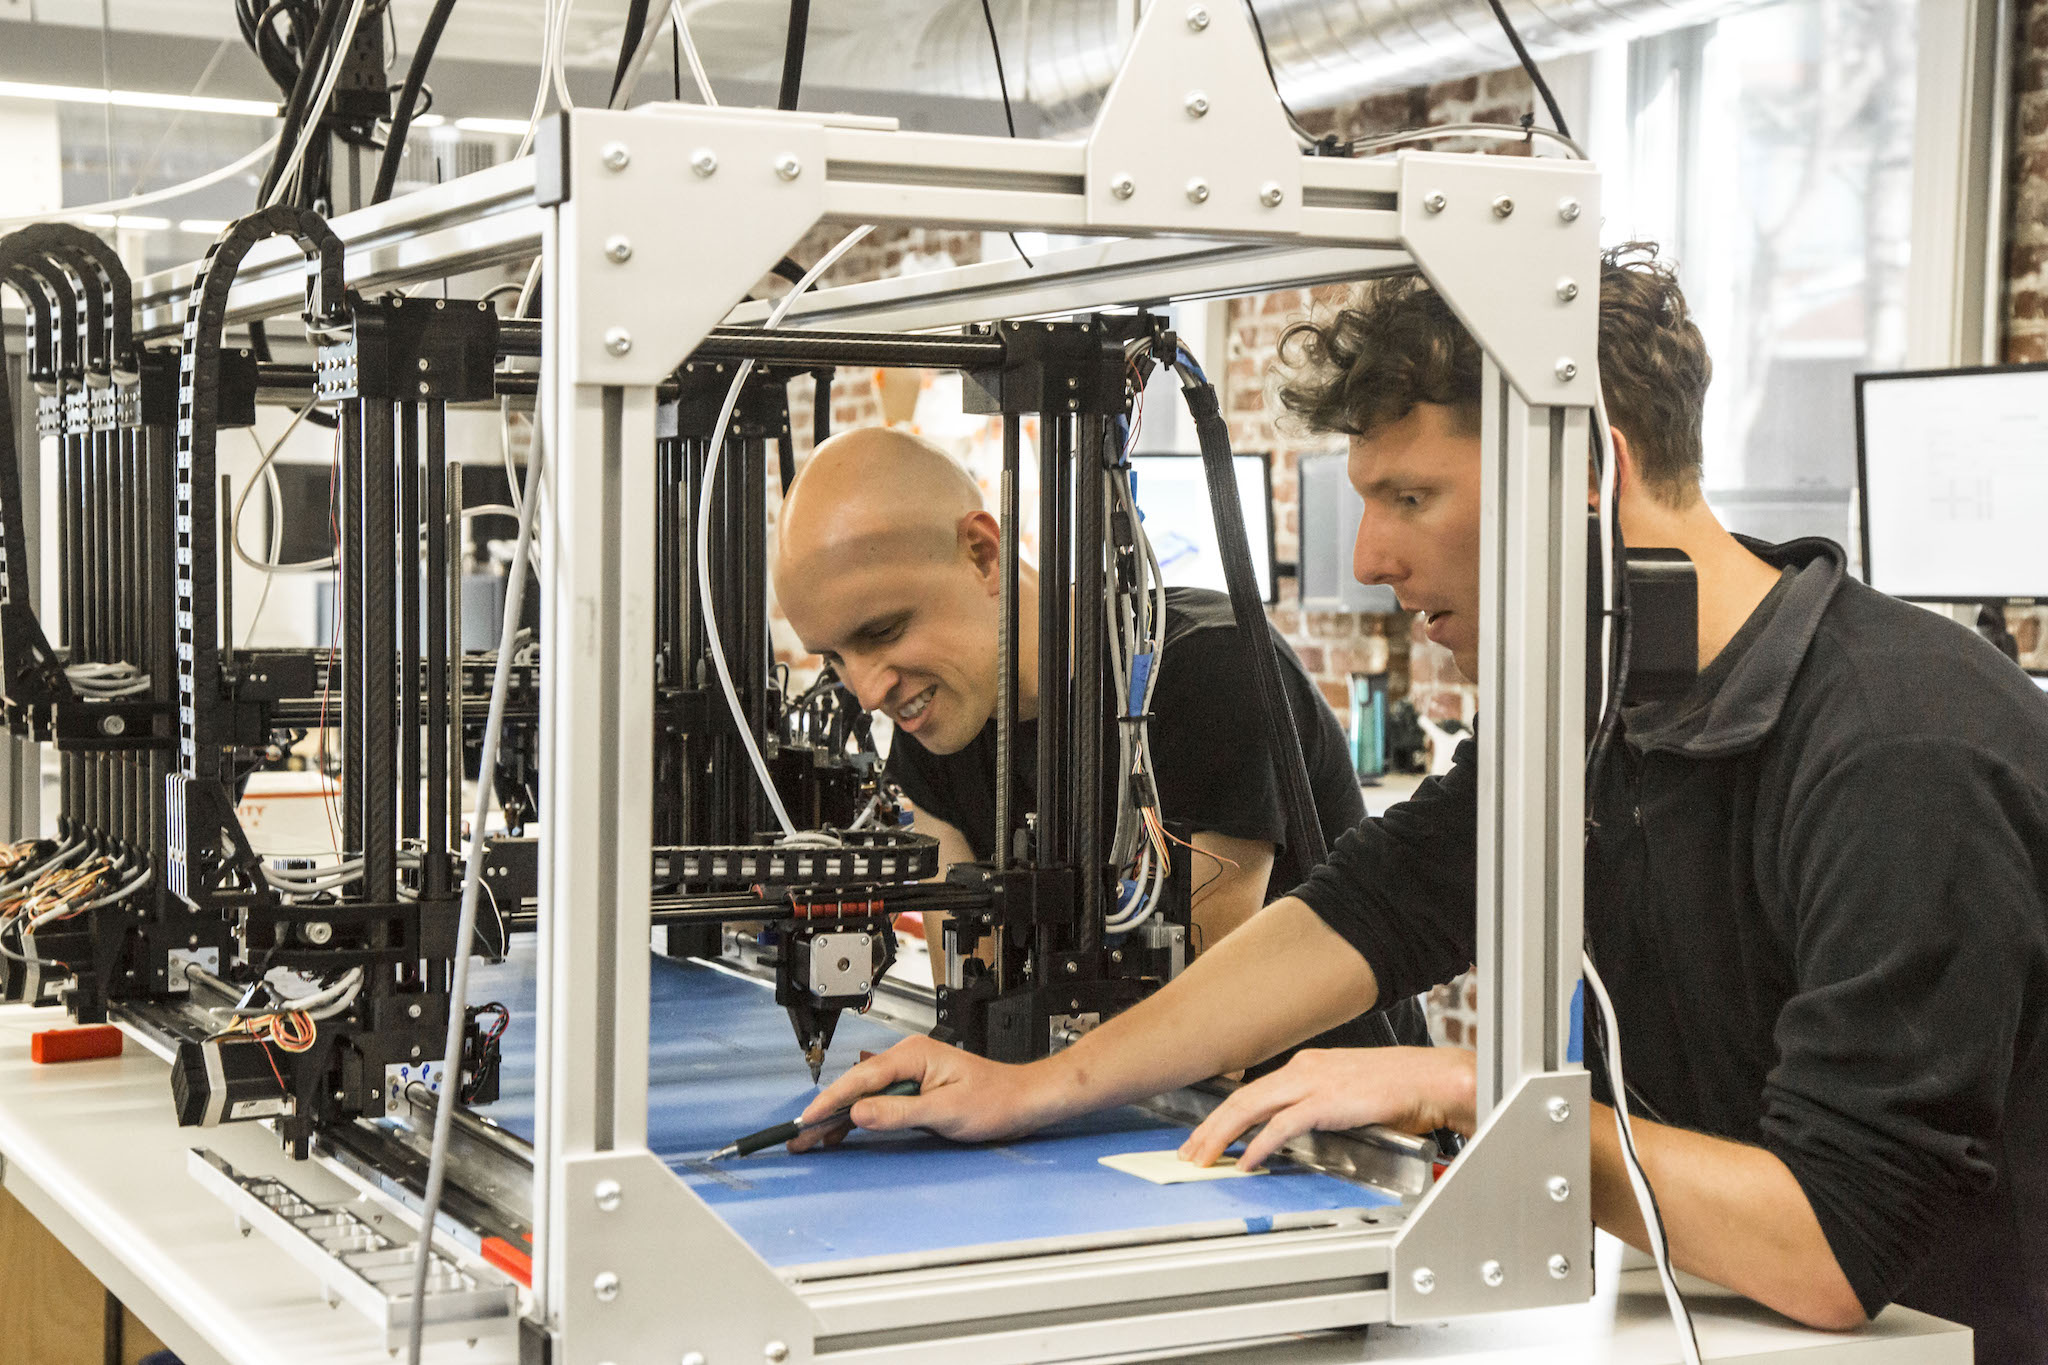 Autodesk's Project Escher Attempts To Combine 3D Printing With Other Manufacturing Processes